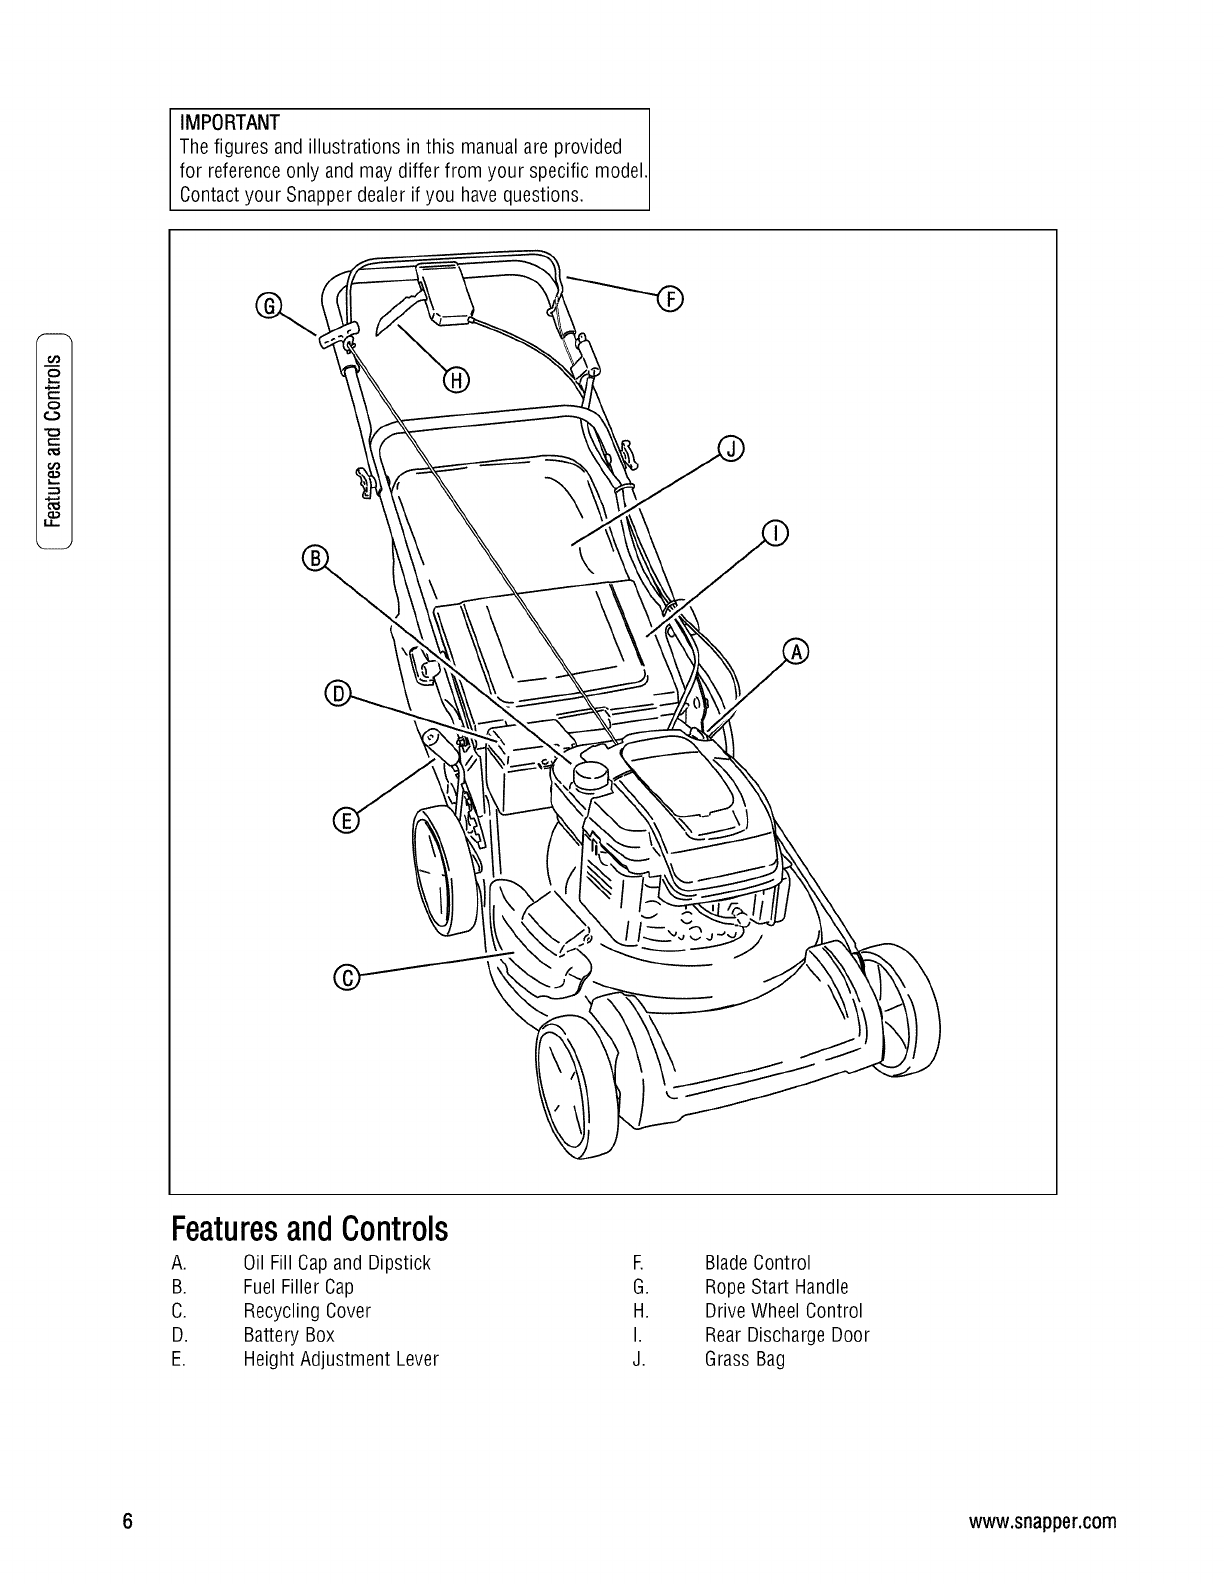 Snapper 7800179 Spv21675 User Manual Lawn Mower Manuals And Guides Wiring Harness Important